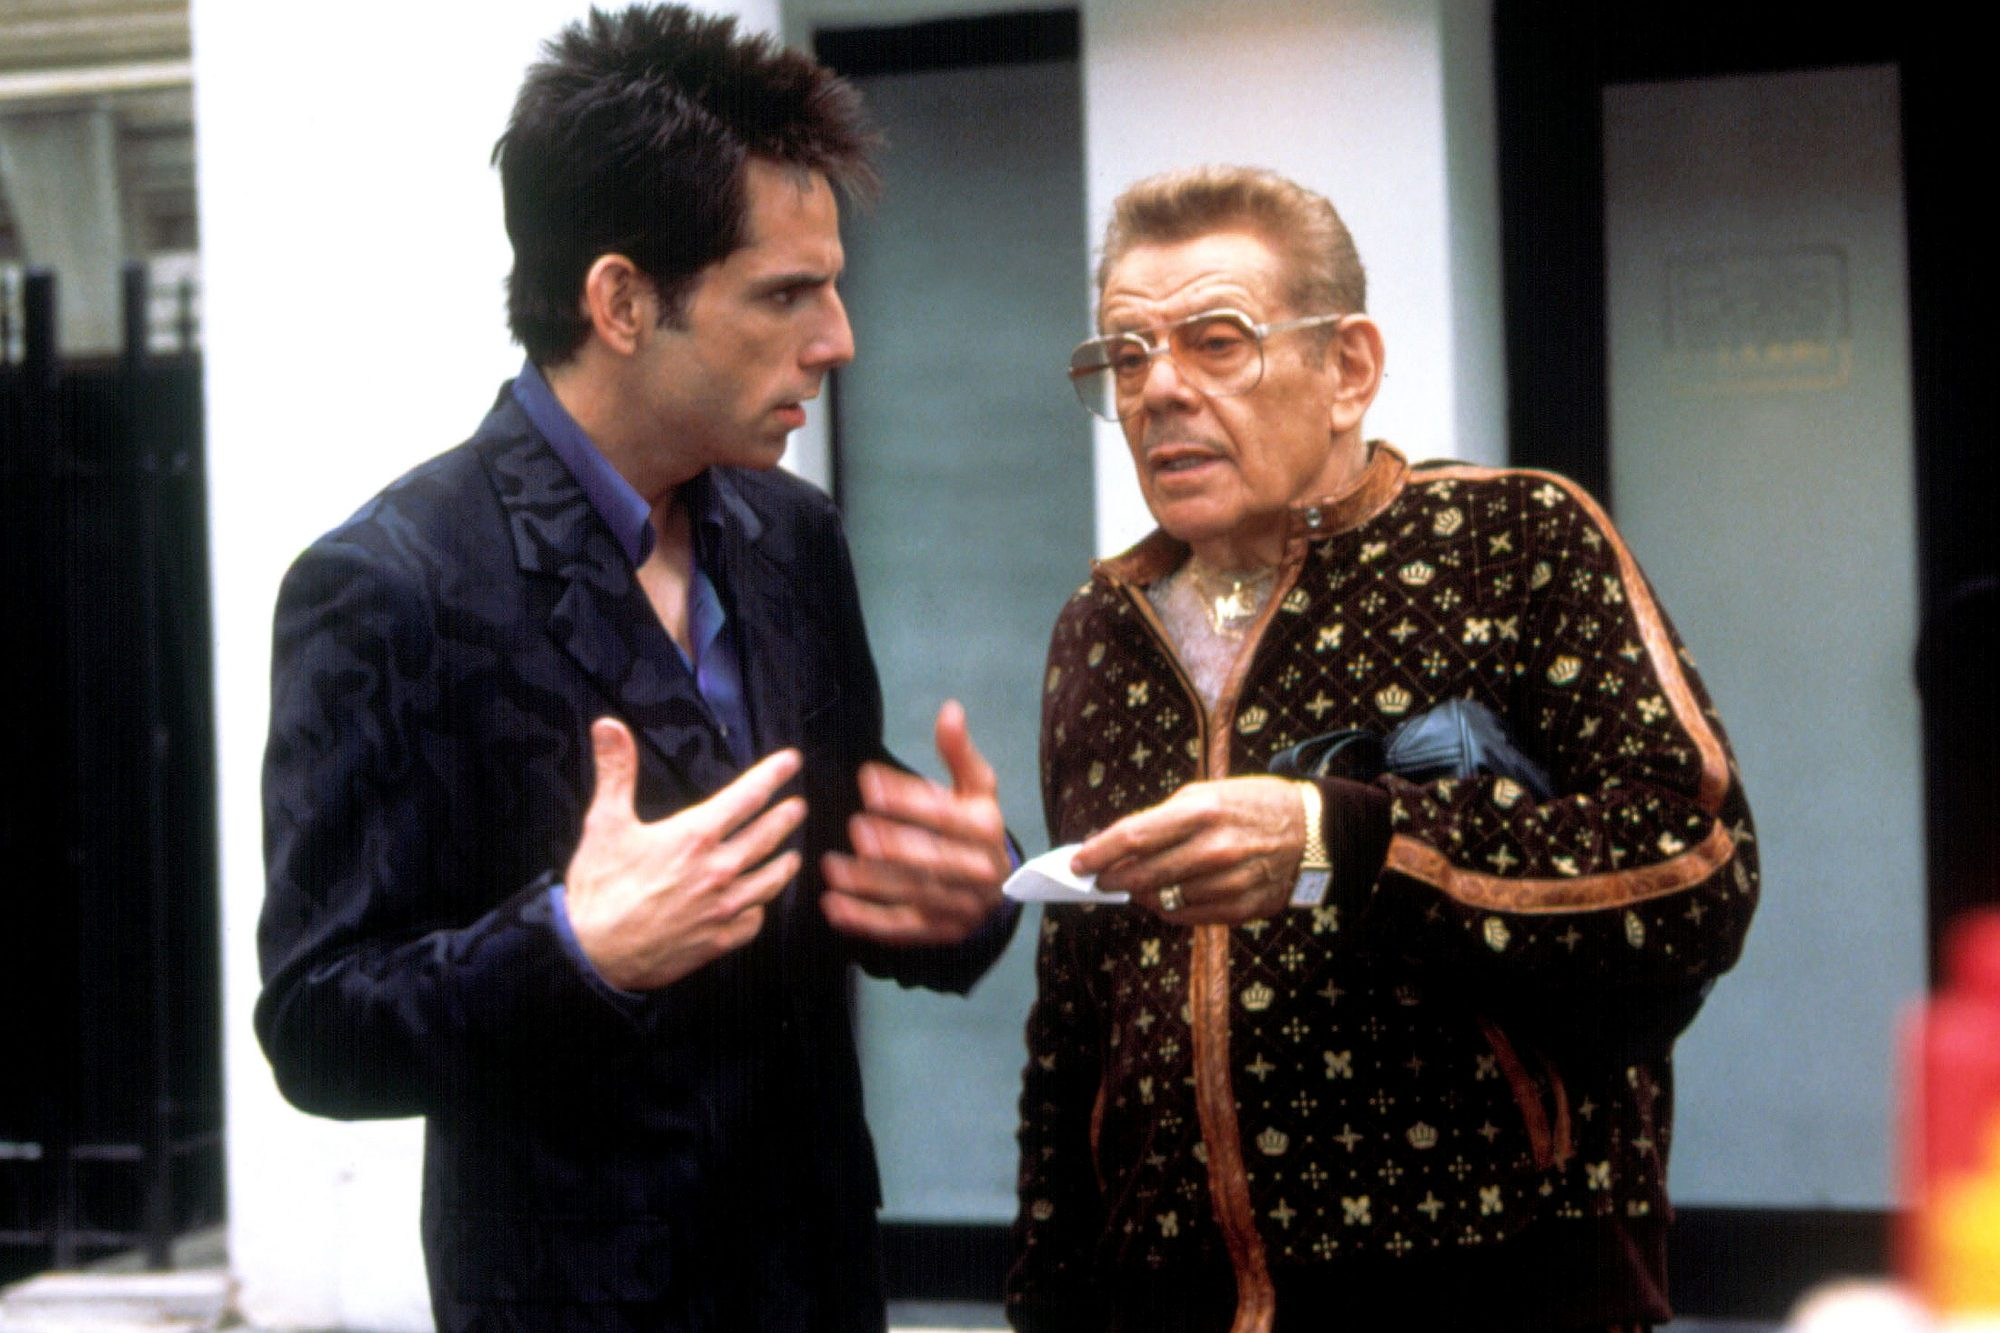 ZOOLANDER, Ben Stiller, Jerry Stiller, 2001. ©Paramount/courtesy Everett Collection